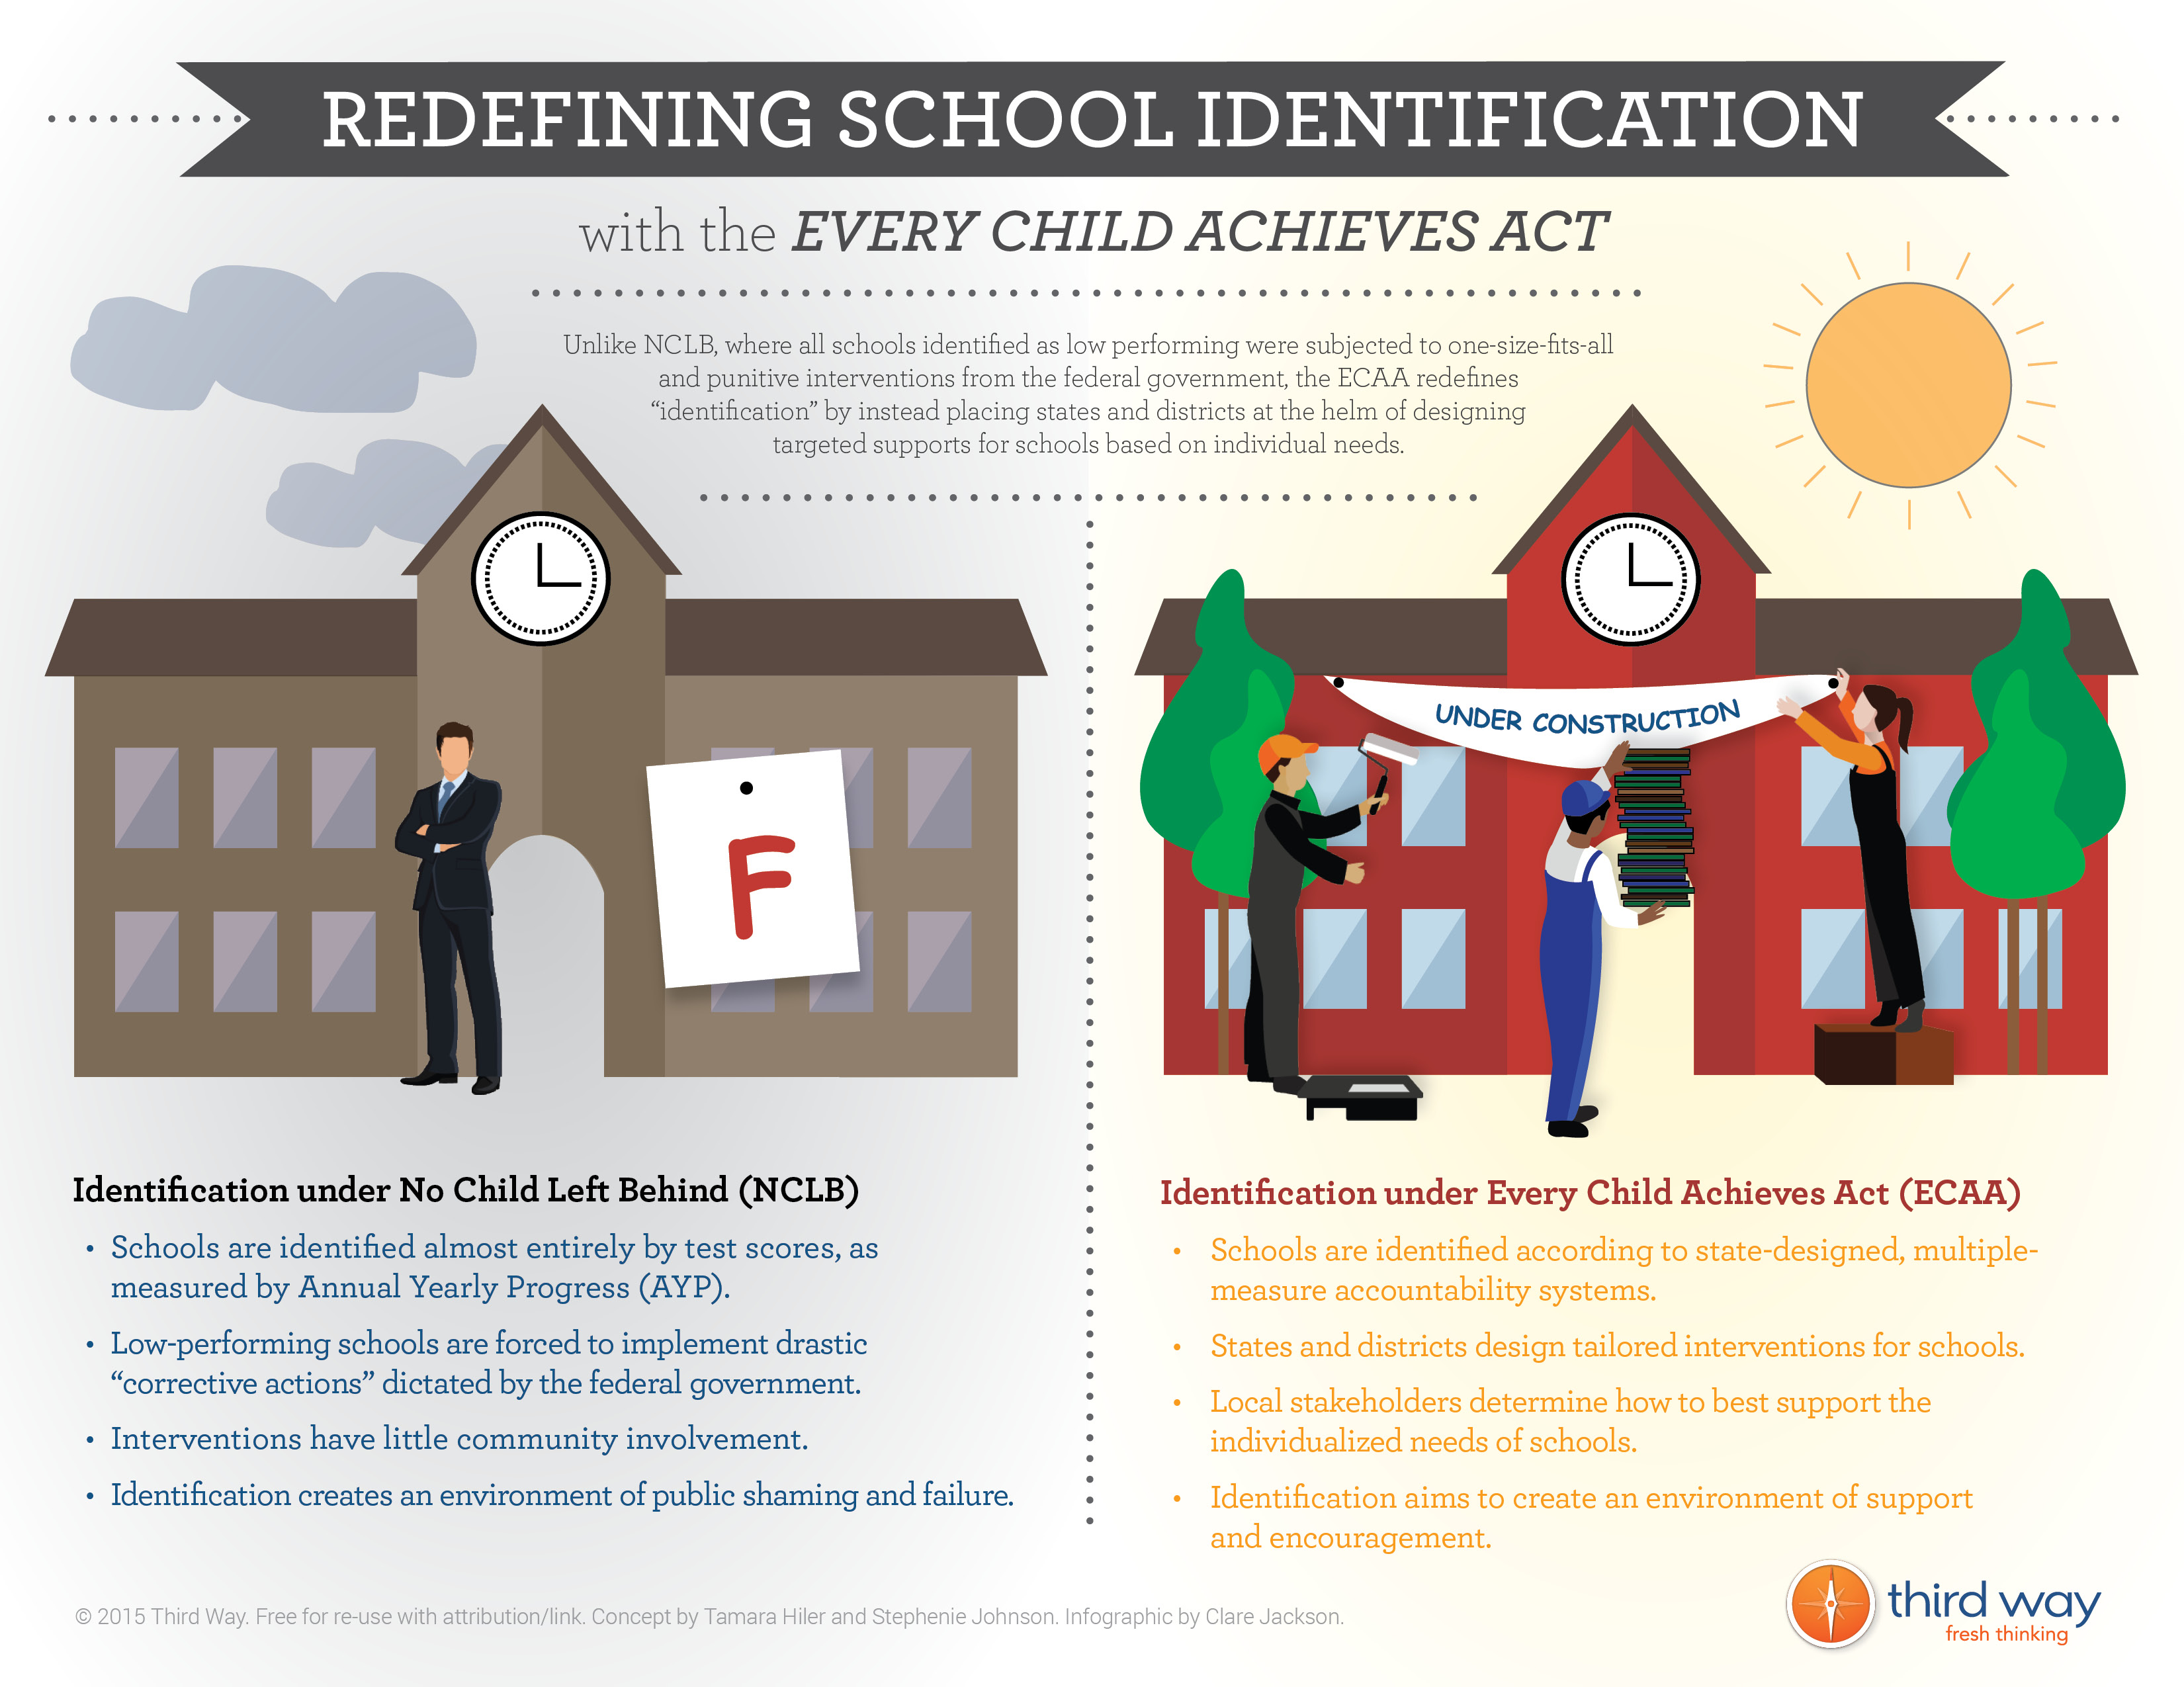 Redefining School Identification with the Every Child Achieves Act